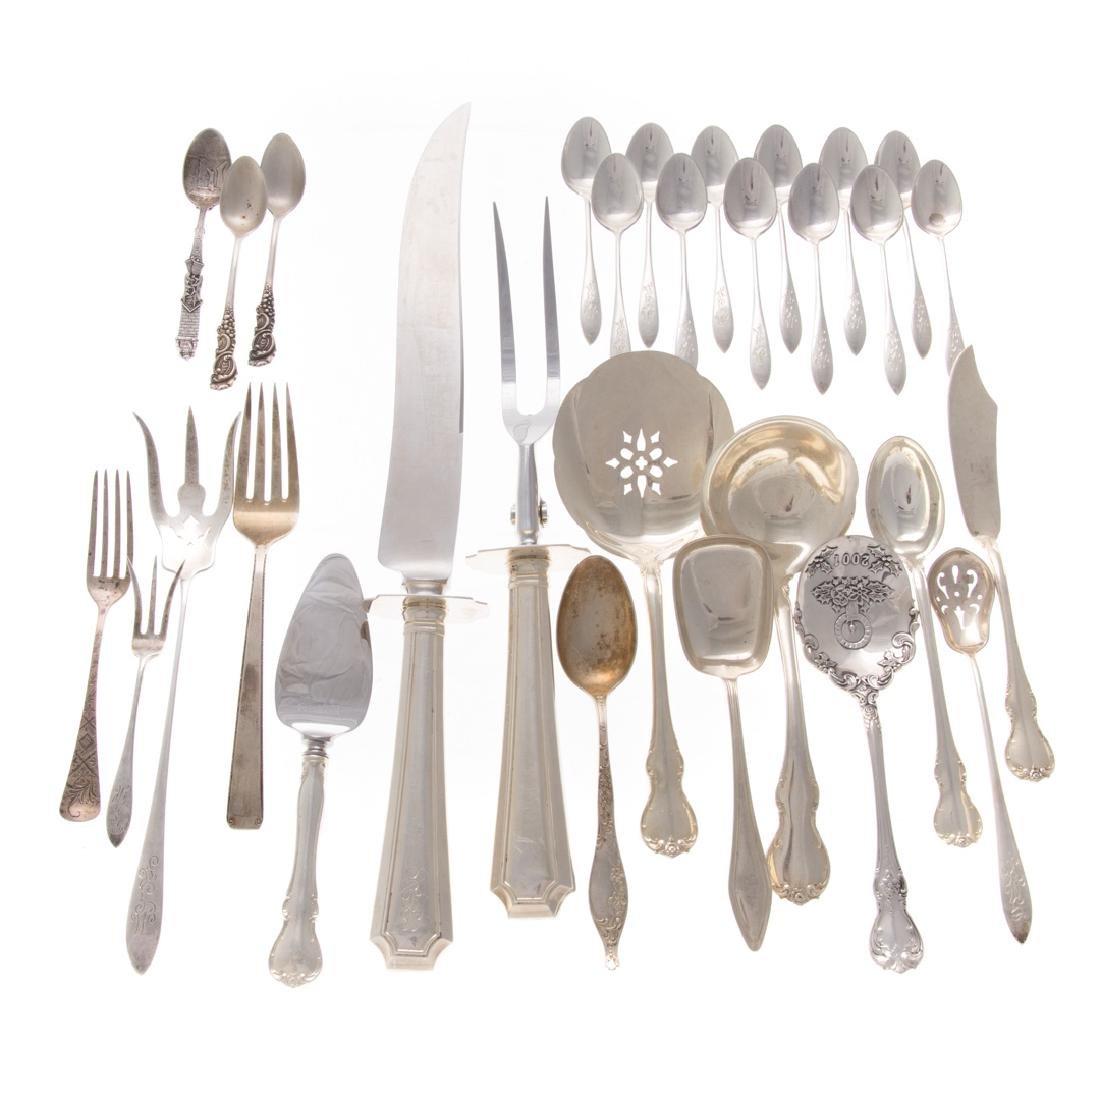 Collection of Gorham and Towle sterling flatware